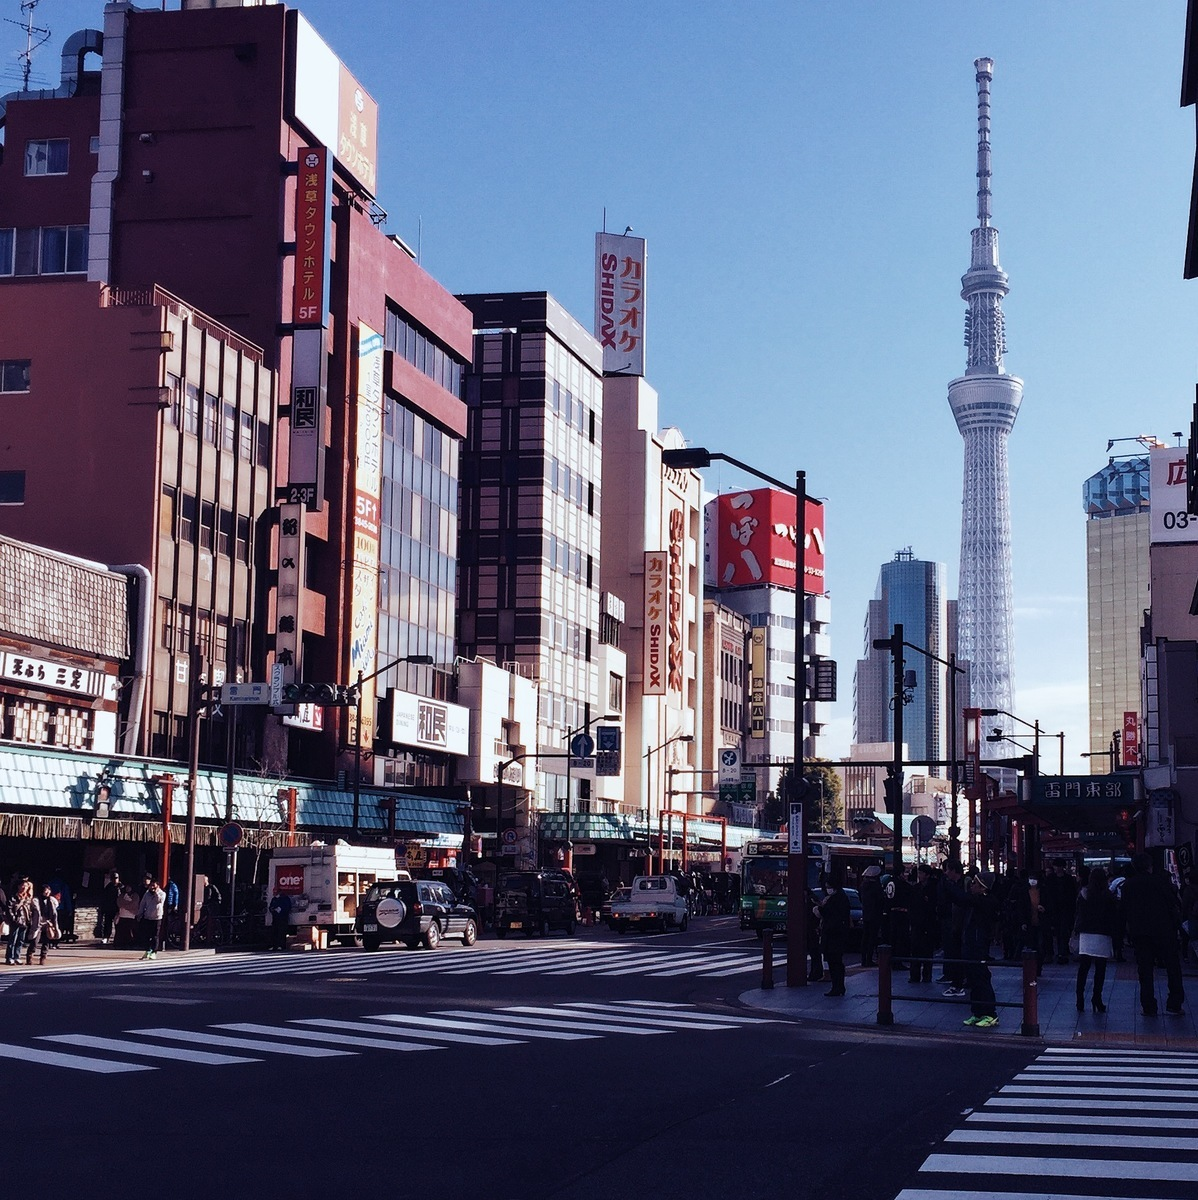 city streets in tokyo with a view of the stunning sky tower